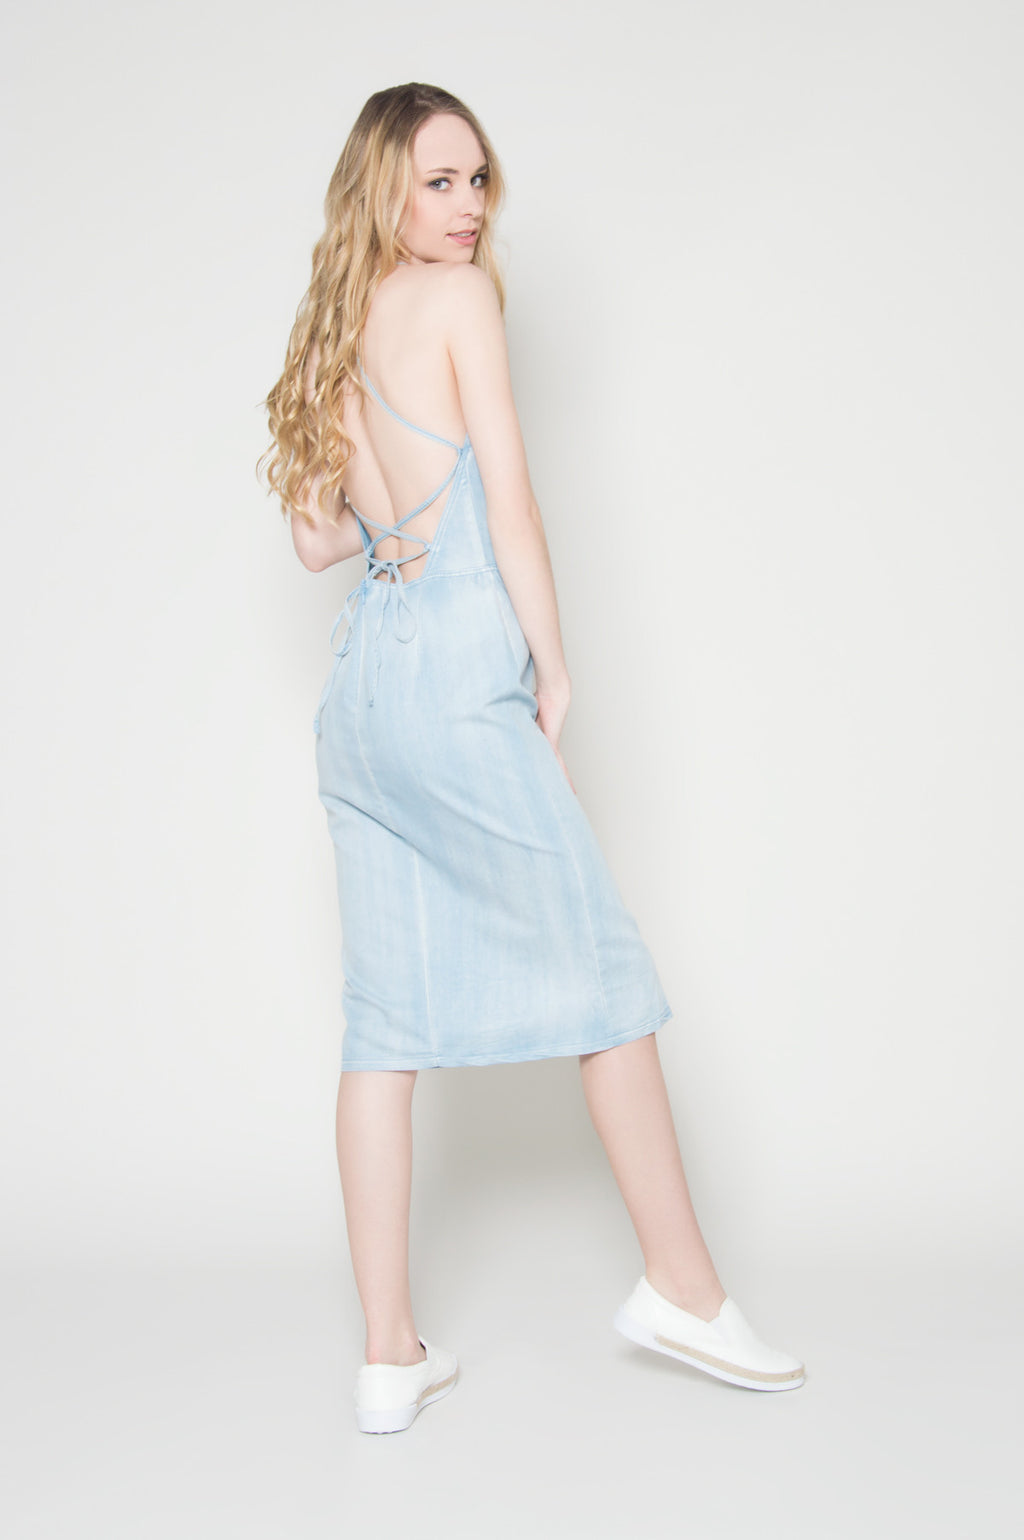 All tied up lace up denim dress, Dresses